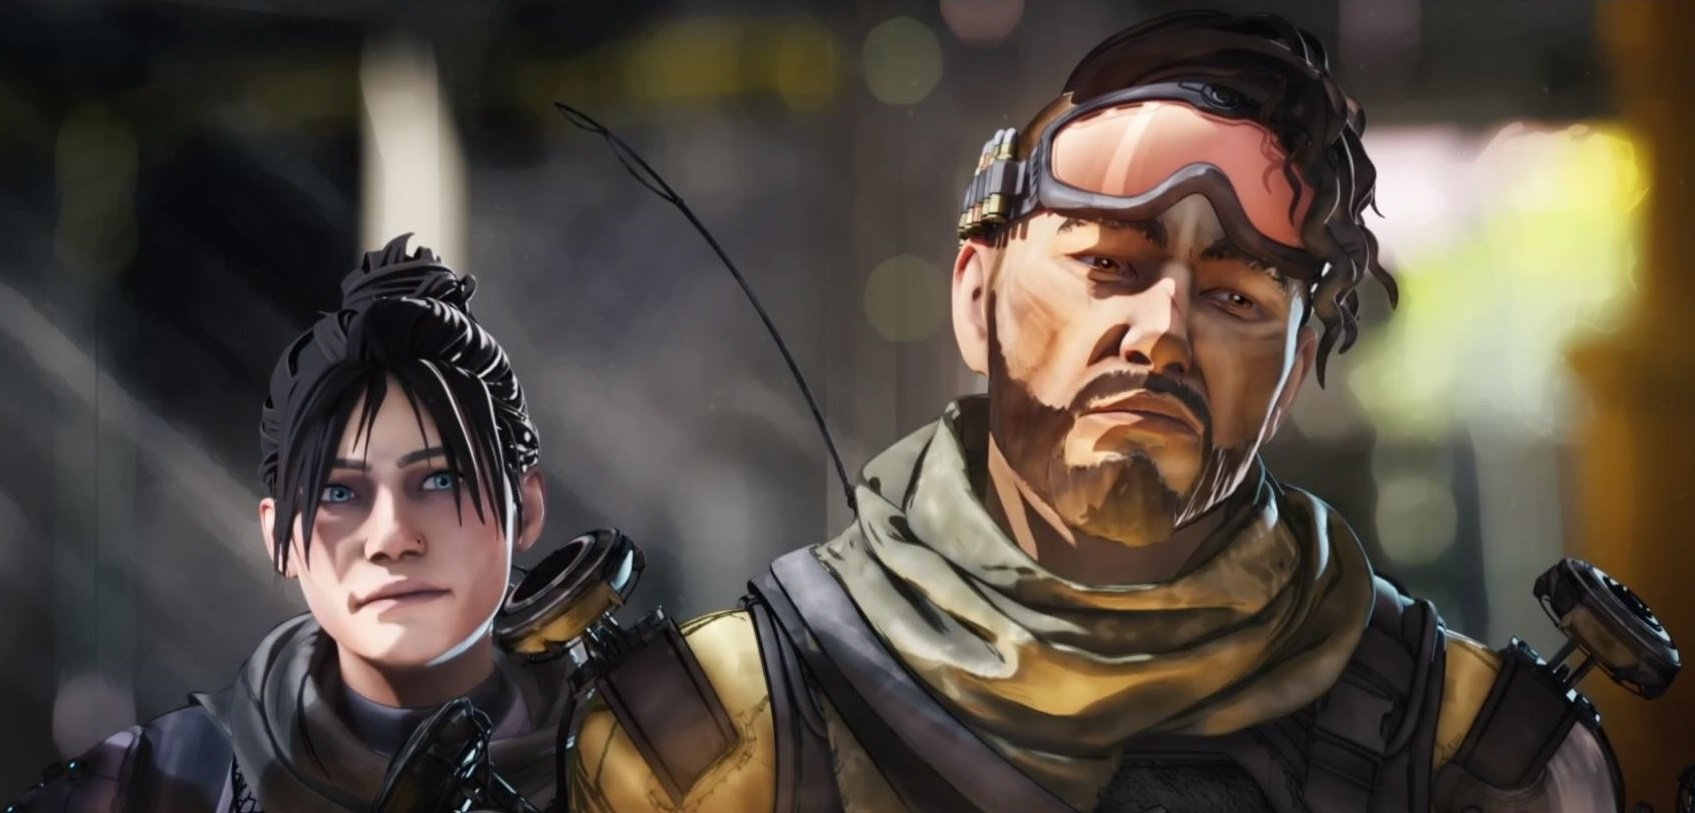 Fall Out 4 Hd Wallpapers Apex Legends Mirage How To Unlock Mirage